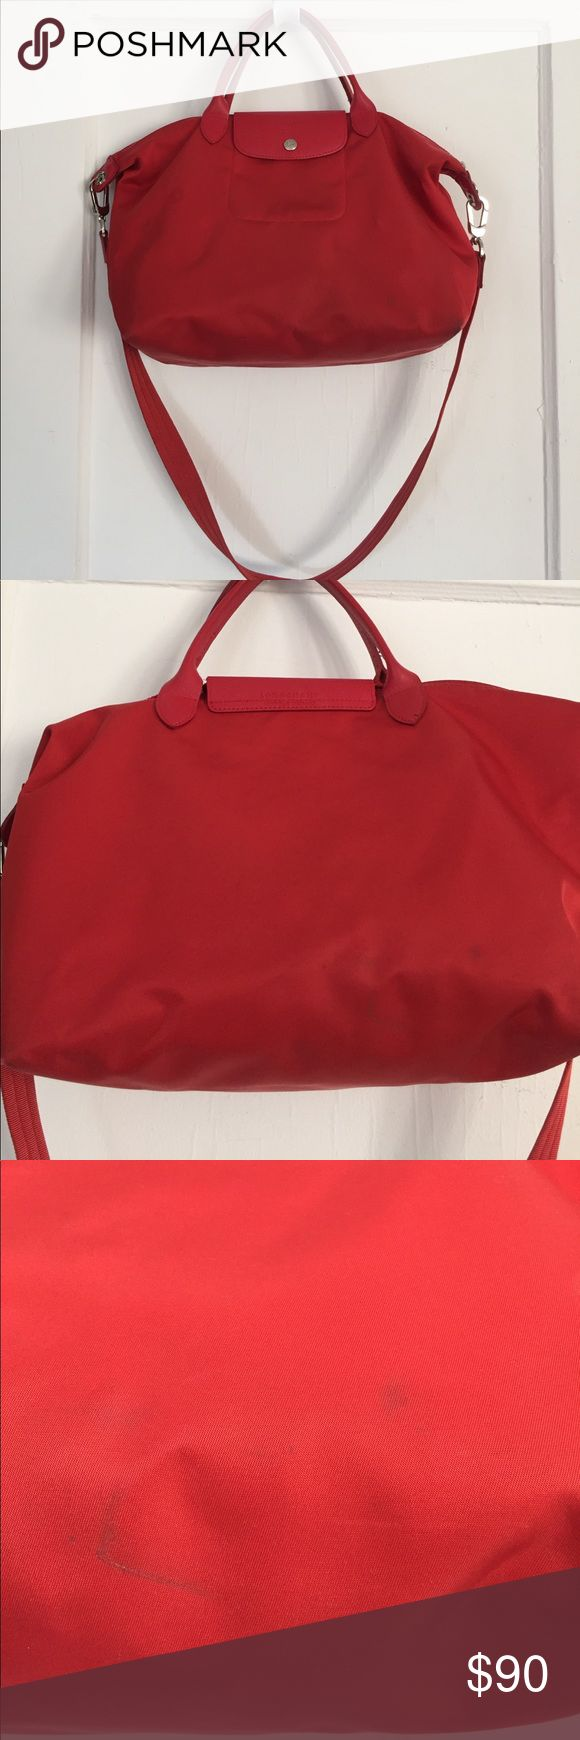 Longchamp Le Pliage Neo Medium Tote bag Longchamp Le Pliage Neo Medium Tote bag in red. Has double leather handles and a detachable shoulder strap. Really spacious interior and lined so spillage is not a problem. Has both a zipper closure and a snap-tab closure. Has some stains and marks as seen in the pictures. Great carryall! Longchamp Bags Totes